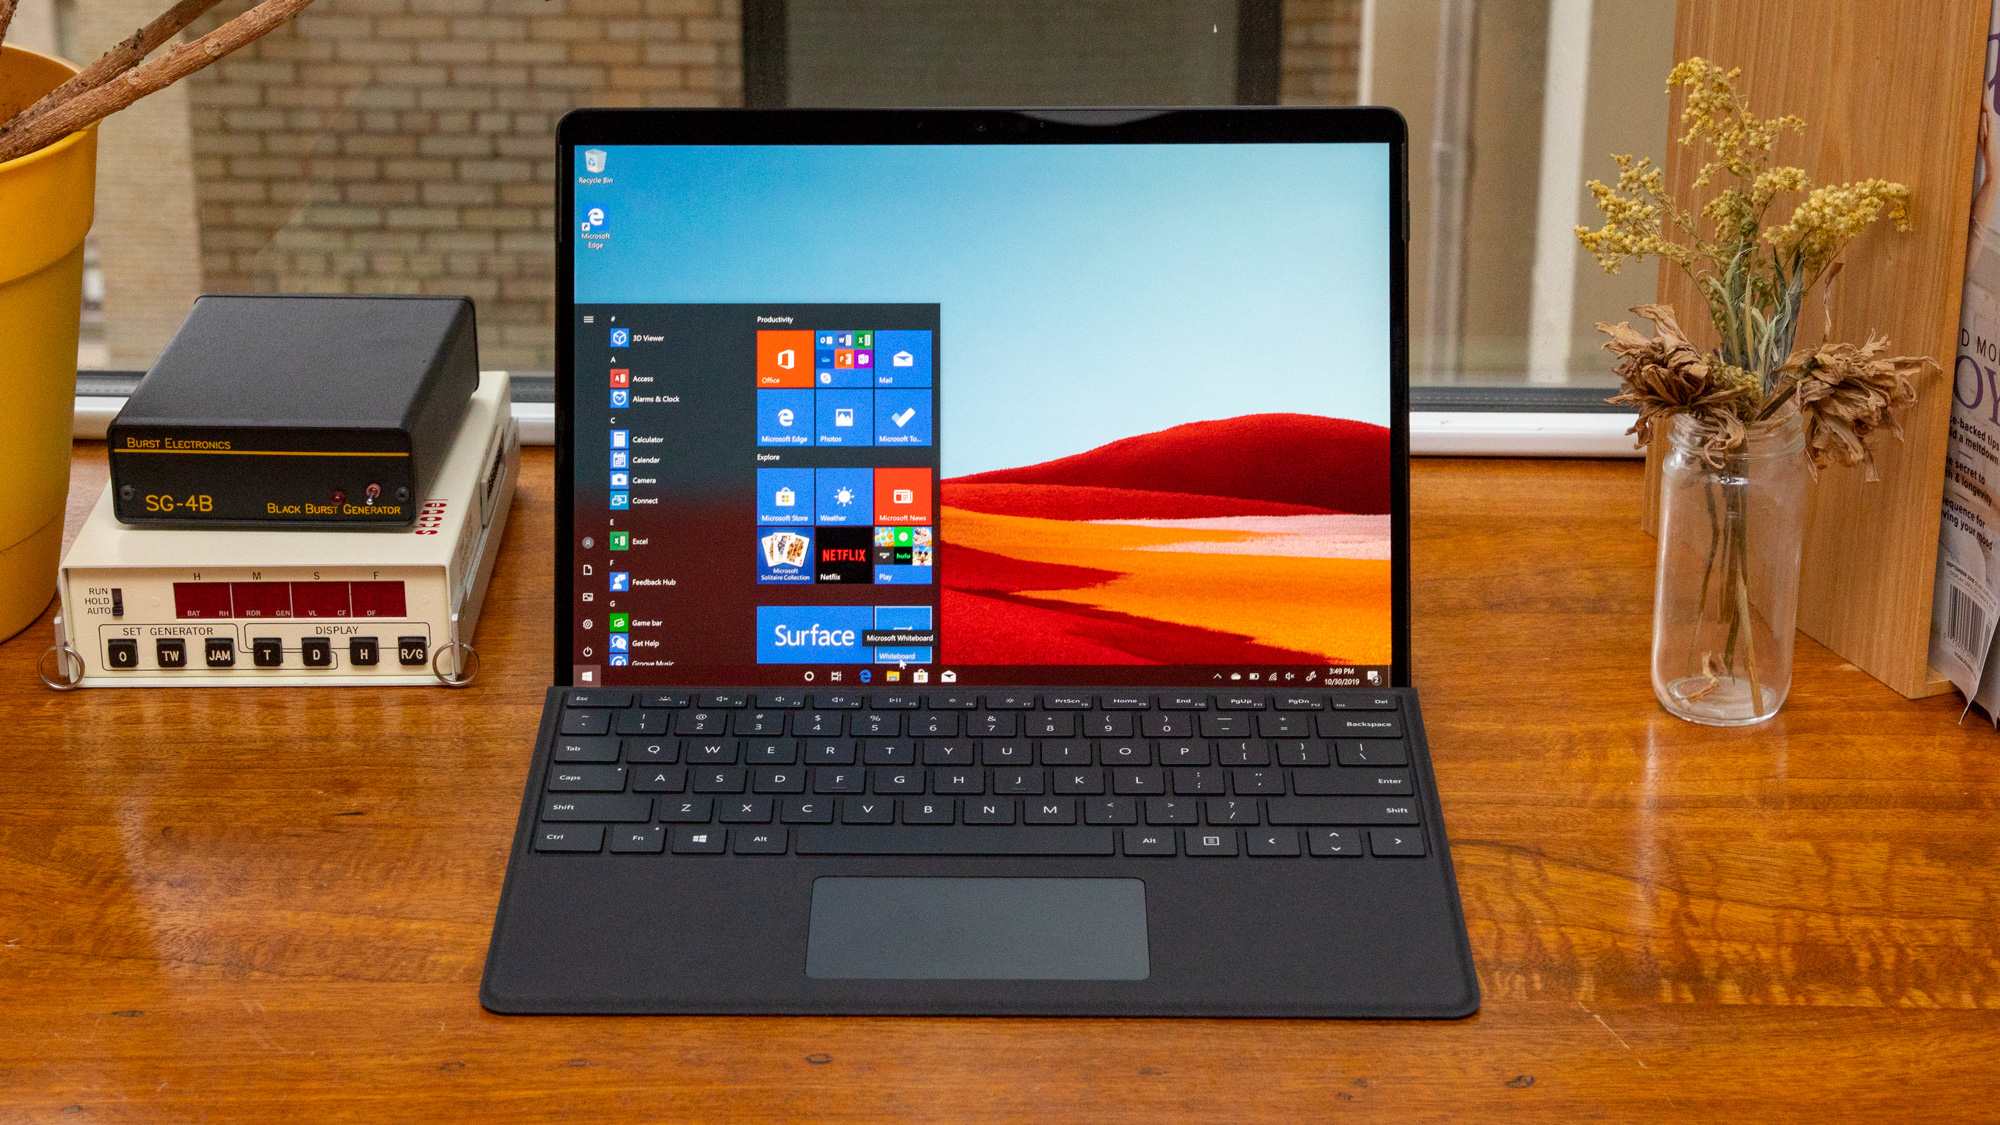 Buying a new PC is the answer to Windows 7 upgrade headaches, says Microsoft